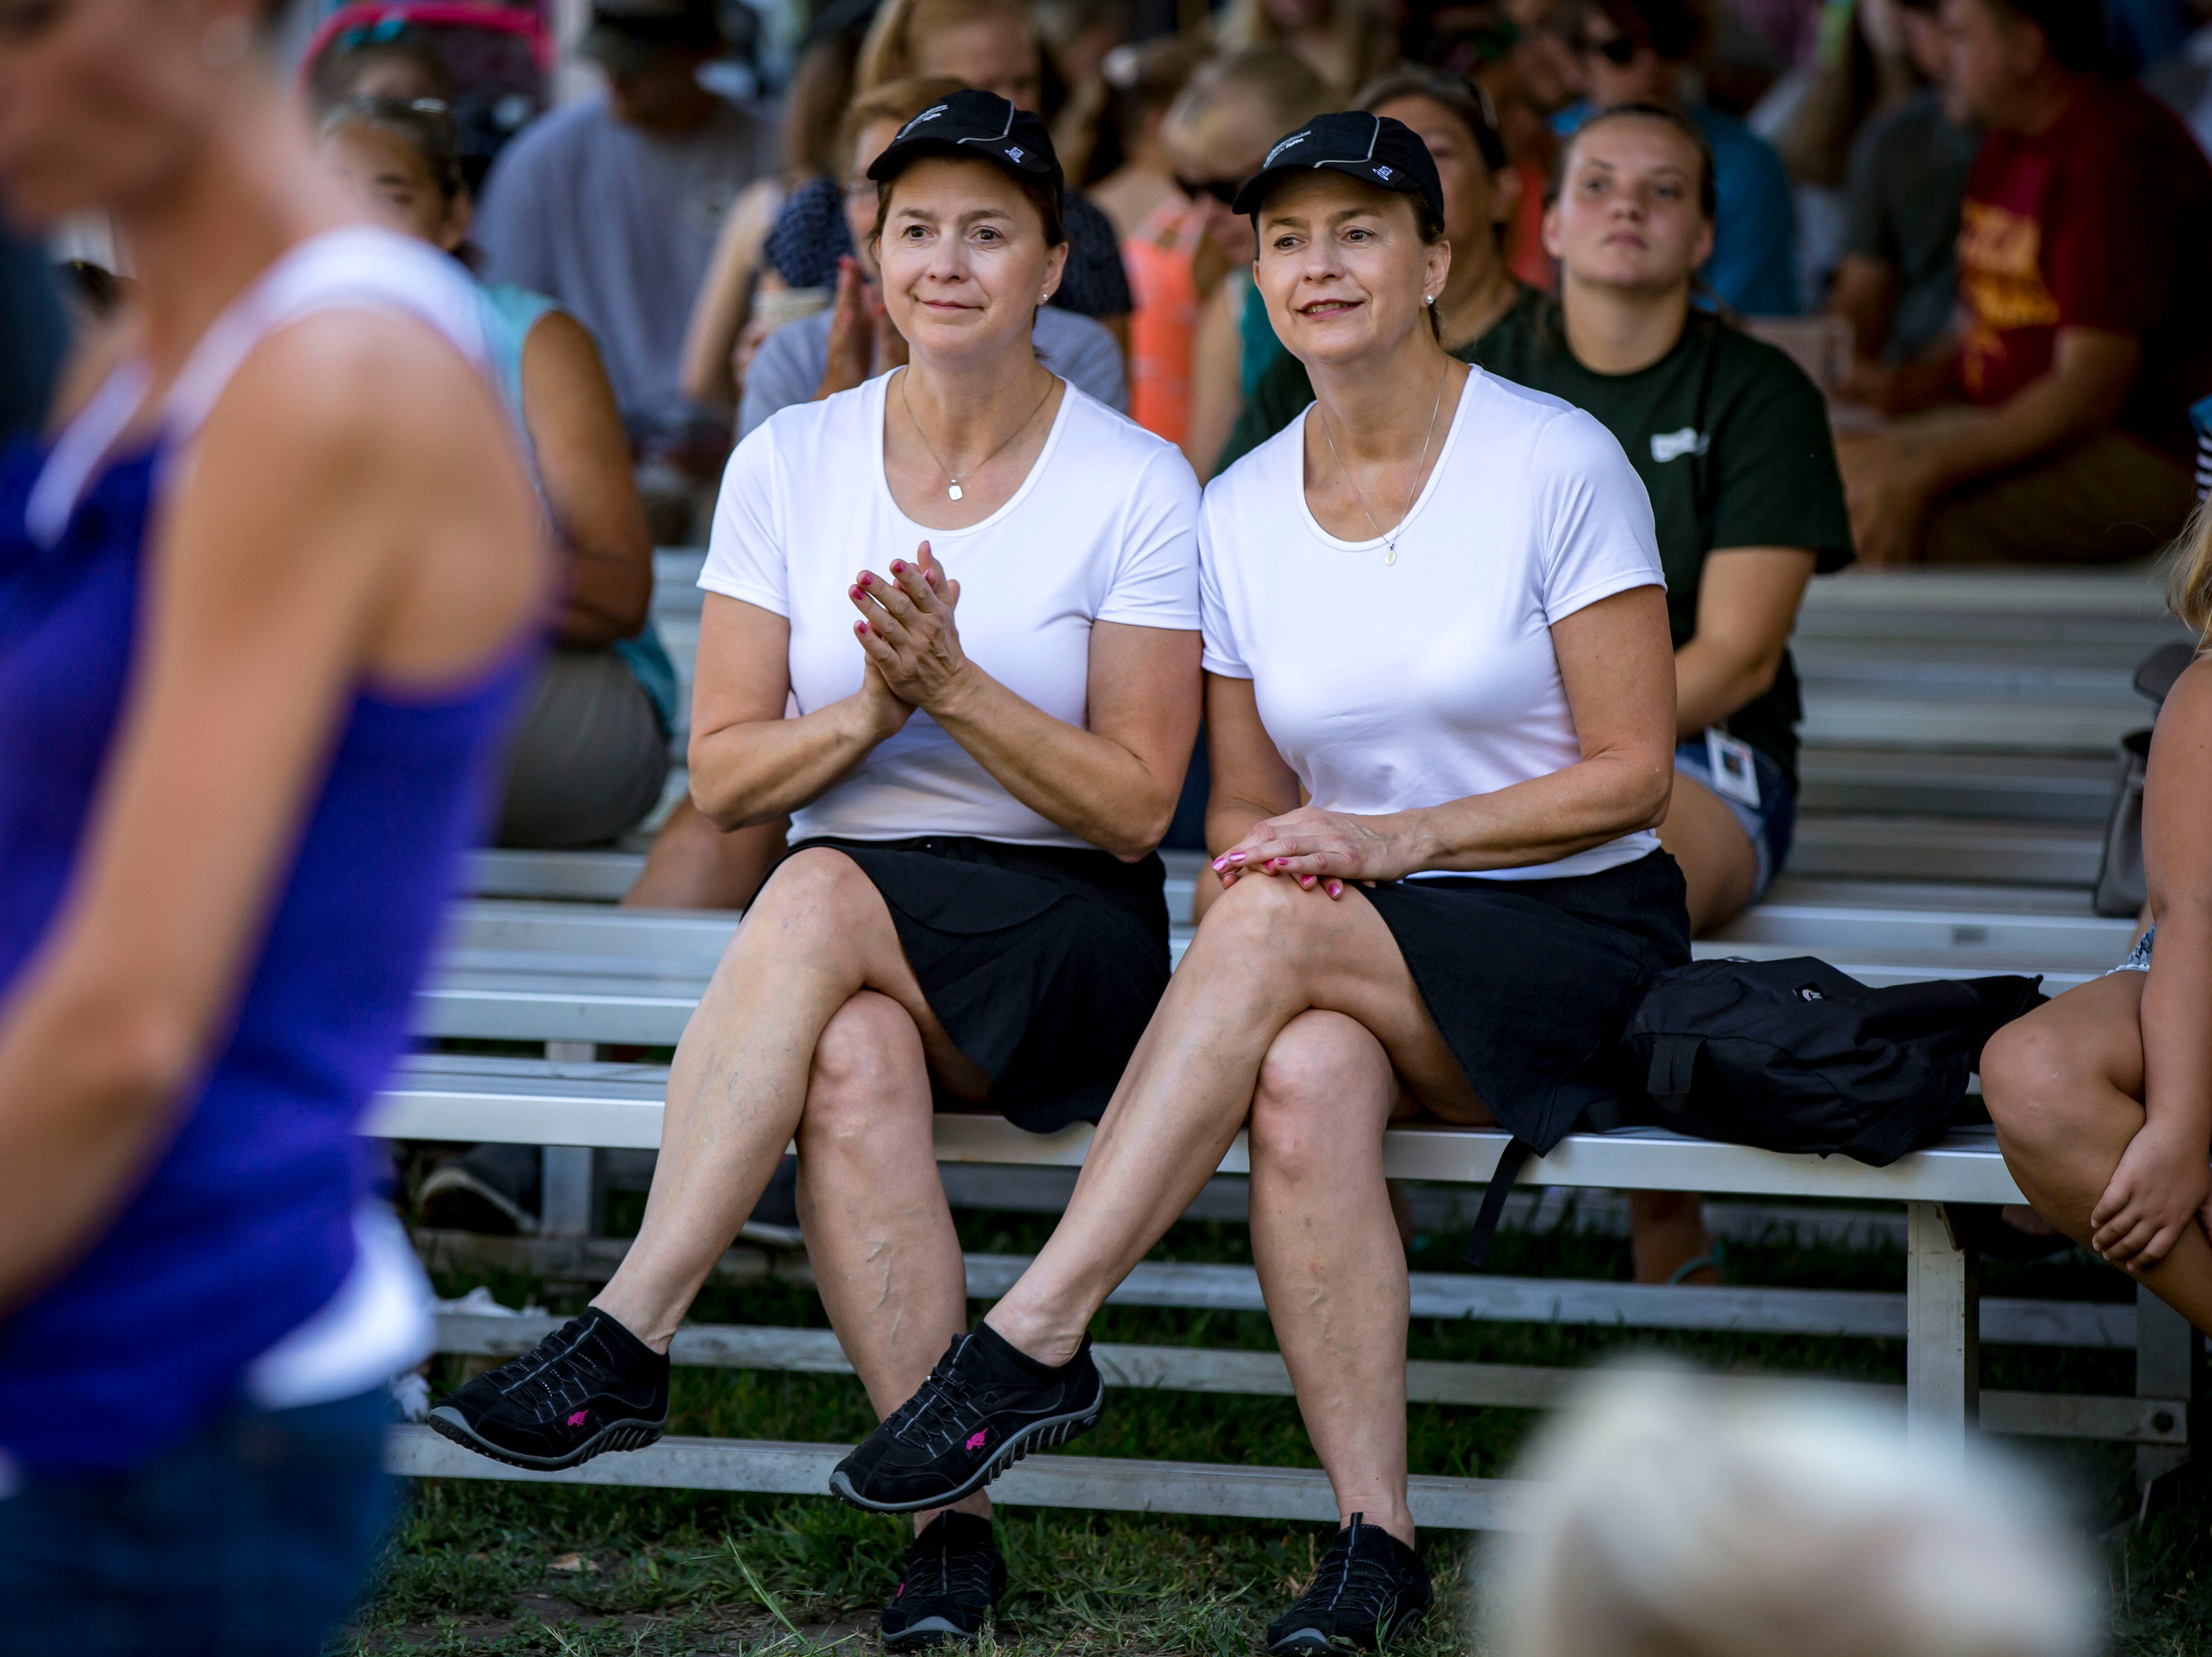 Karma Nielsen of Altoona, left and her sister Larla Alexander of Phoenix, Arizona, wait to compete during the Twins, Triplets and More Contest on the Anne and Bill Riley Stage at the 2018 Iowa State Fair in Des Moines Thursday, Aug. 9, 2018.